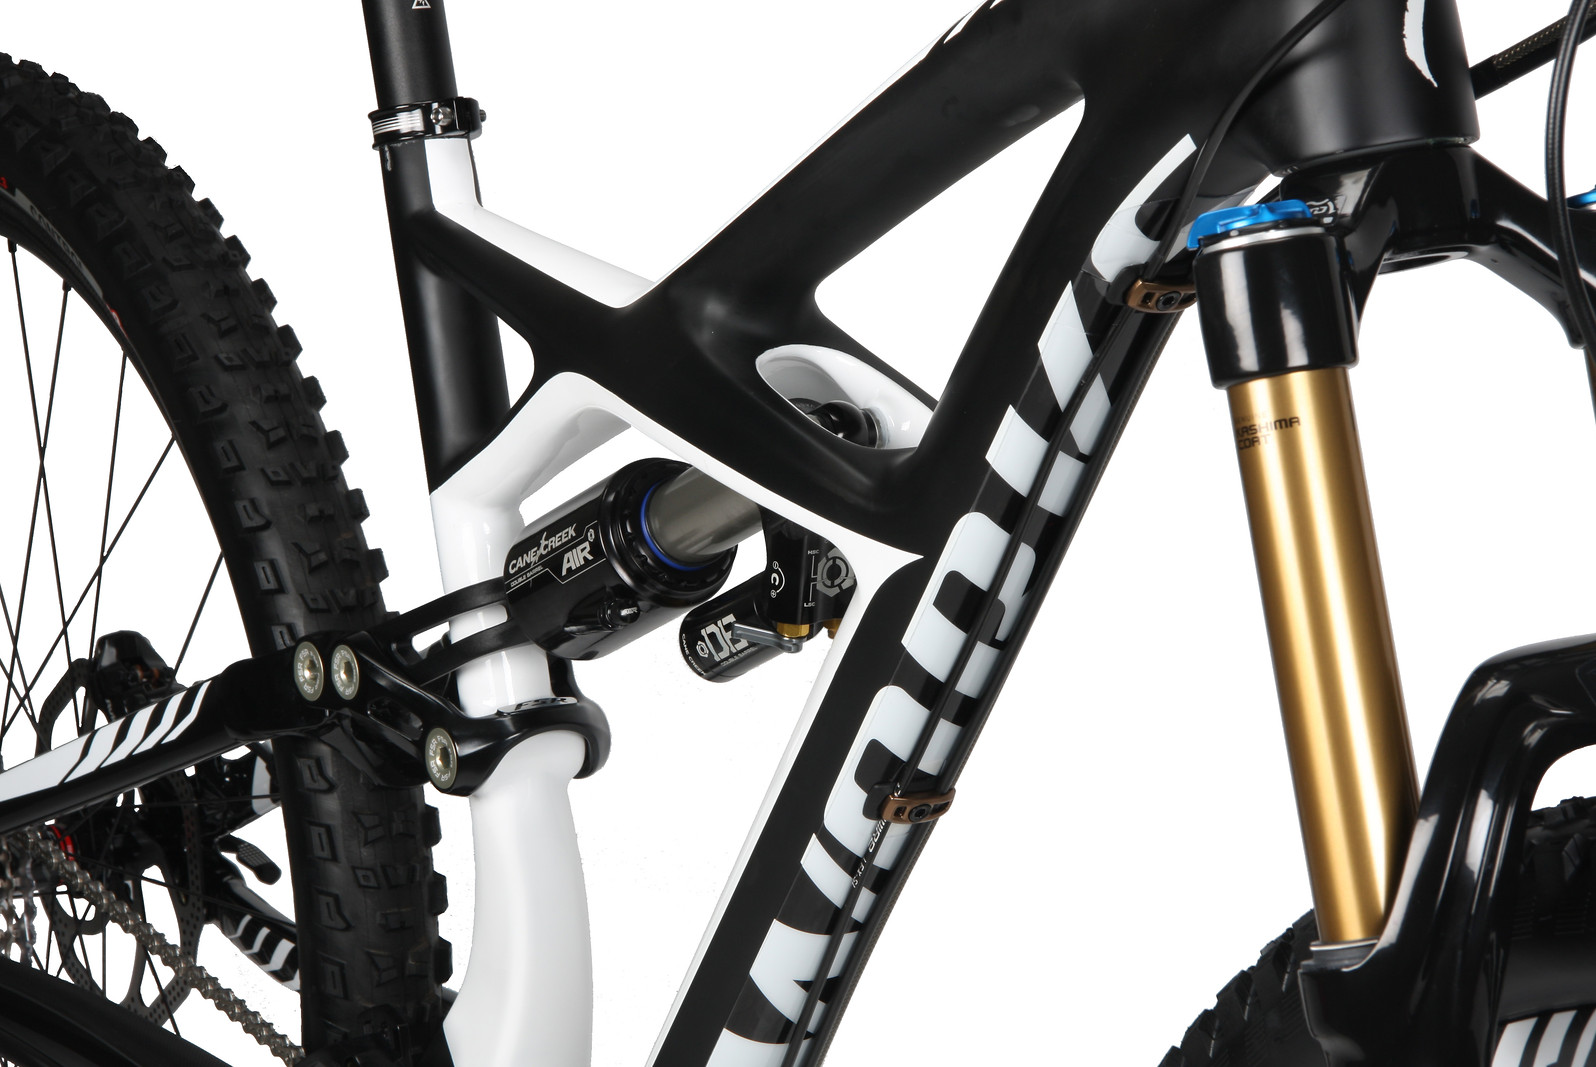 2013 Specialized Enduro S Works Carbon Se 29 Reviews